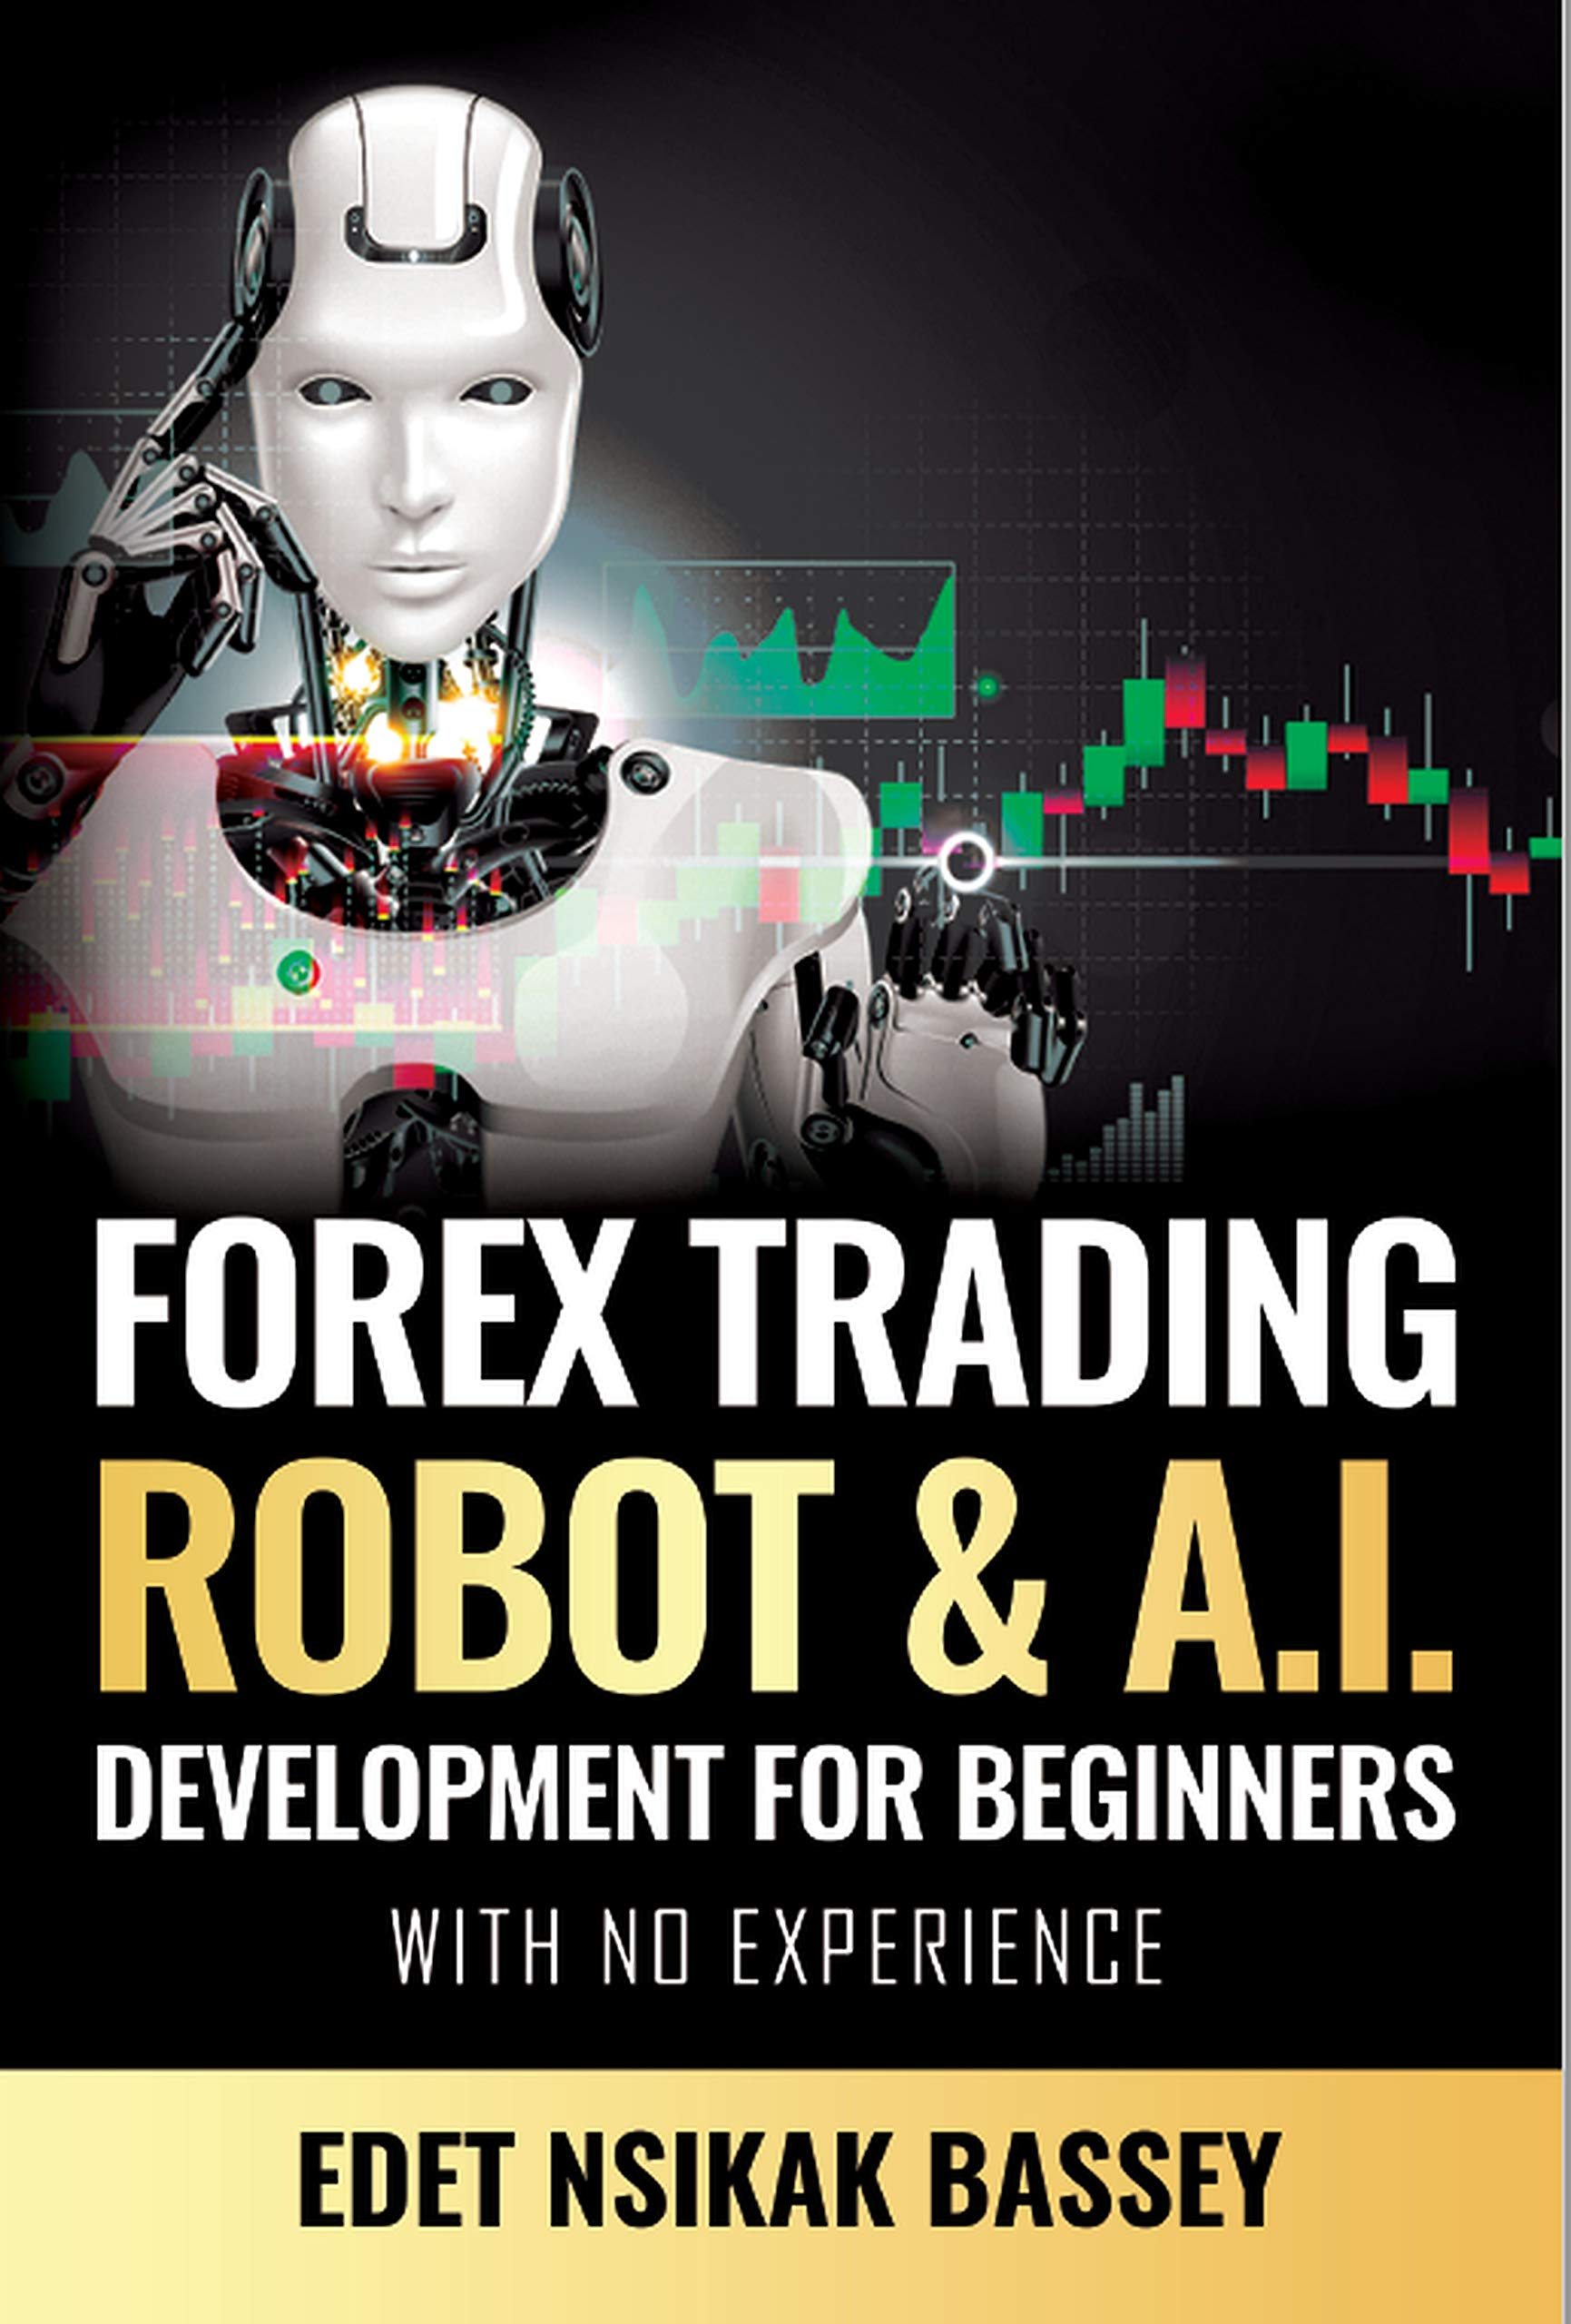 Forex Trading Robot and A.I. Development for Beginners With No Experience